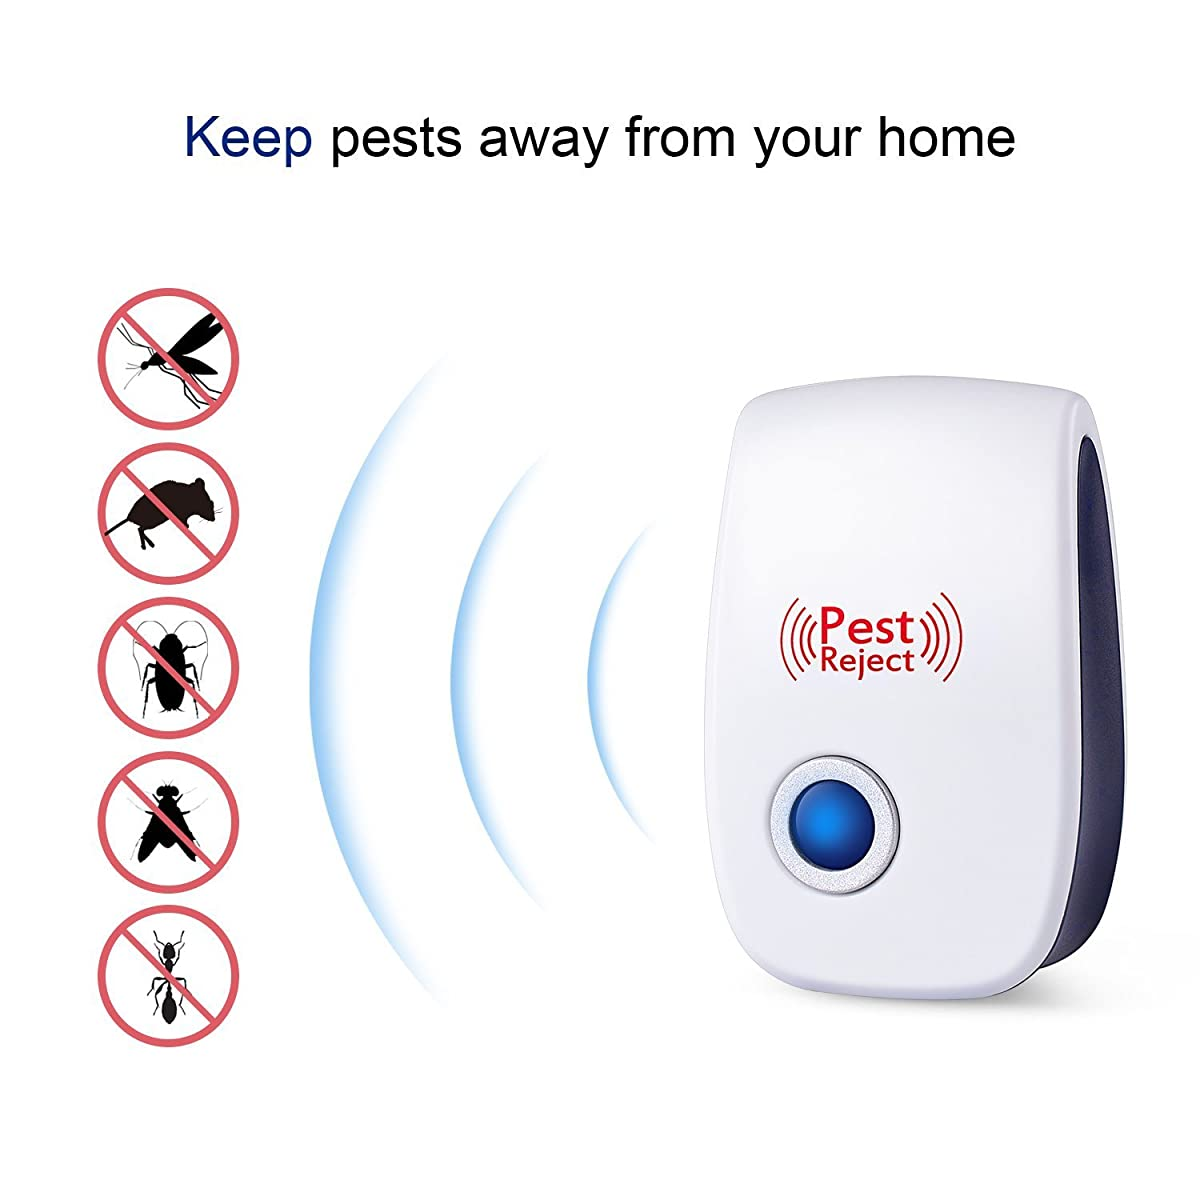 [2018 UPGRADED] Pest Control Ultrasonic Repeller - Electronic Spider Repellent Plug In for Insects & Mice, Mouse, Roaches, Bugs, Flies, Fleas, Ants and Mosquitoes, Environment-friendly